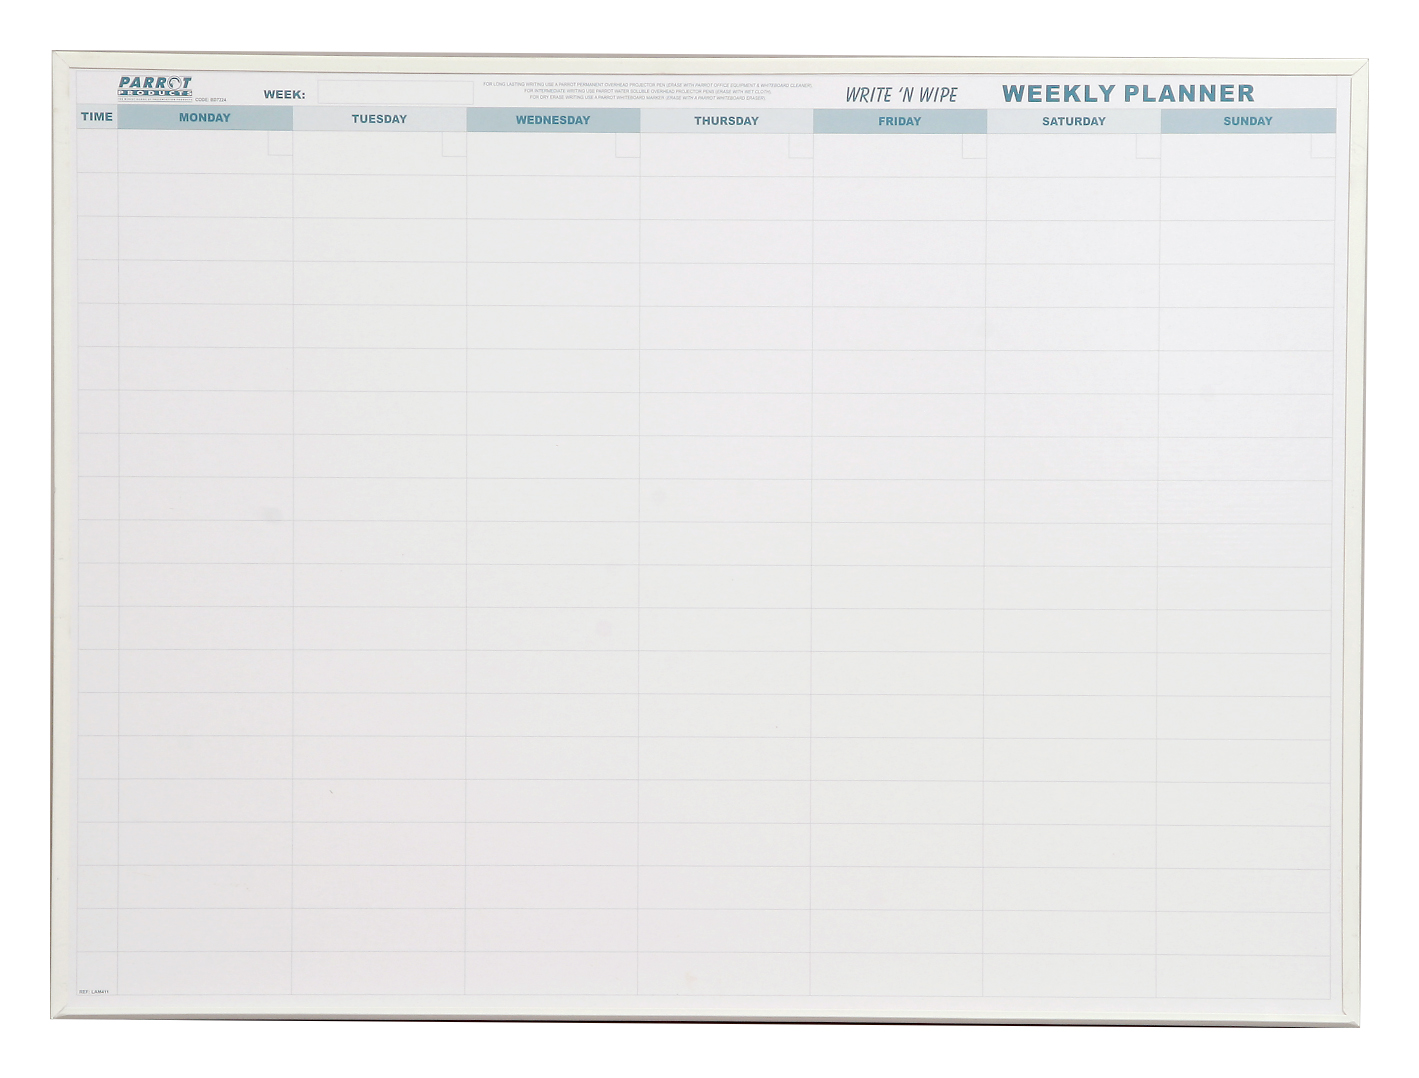 Weekly Planner (Write 'n Wipe 800*600)